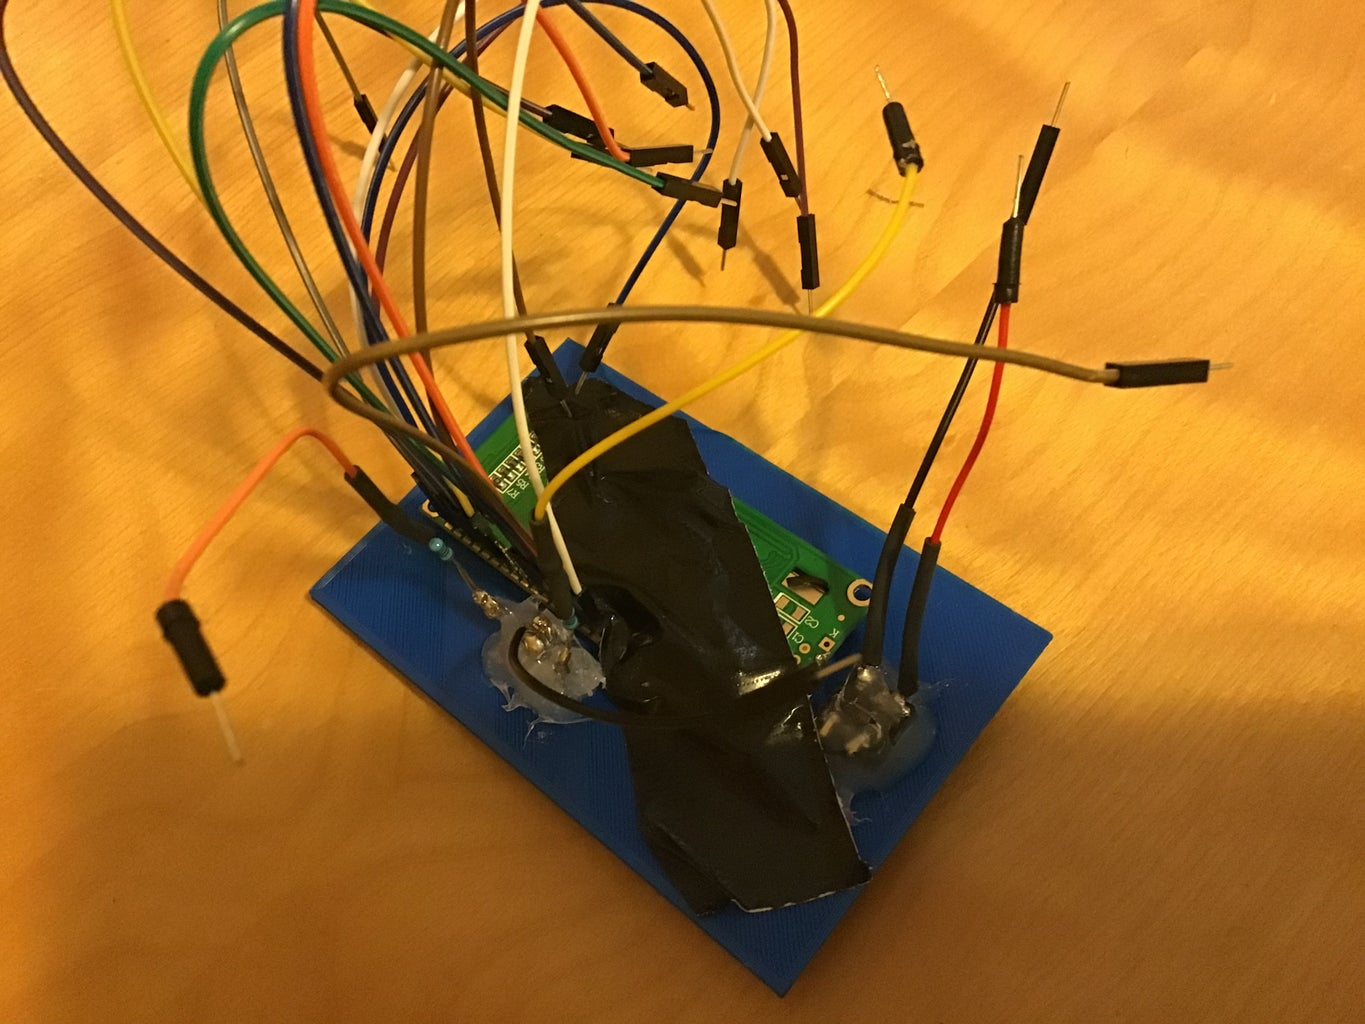 Connect the Rest of the Circuit